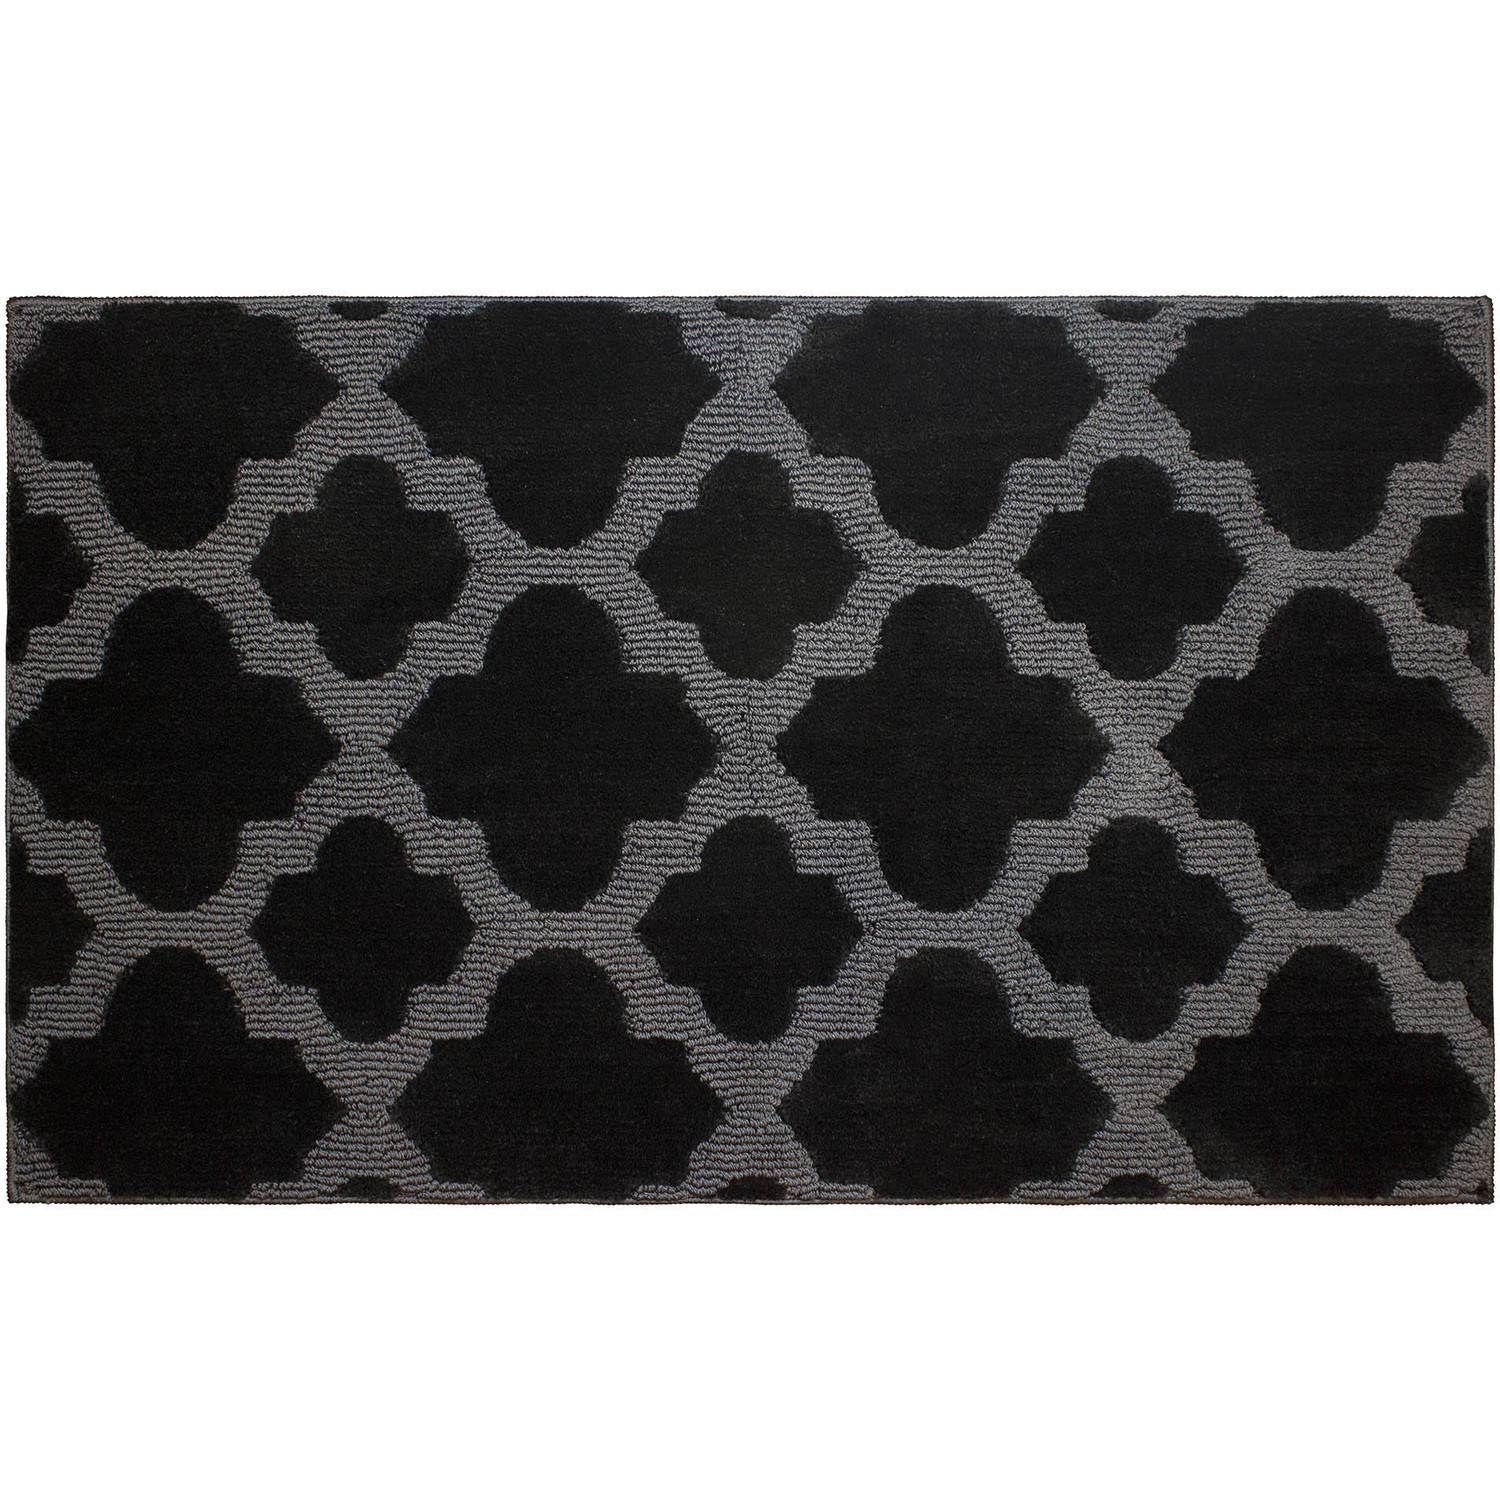 Jean Pierre Cut and Loop Alessandra Textured Decorative Accent Rug by YMF Carpets Inc.